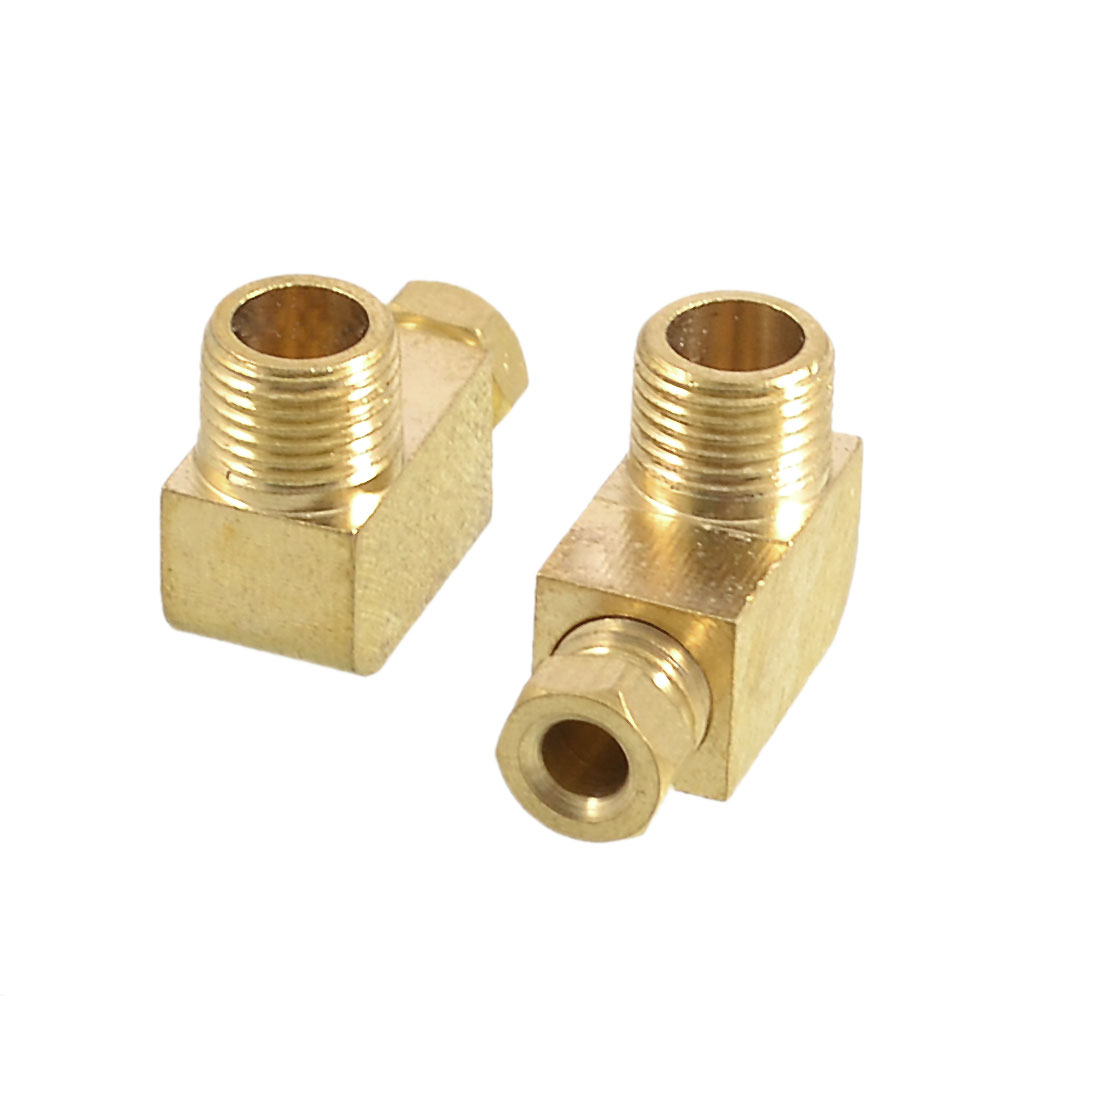 "2 x Air Pneumatic 1/8"" PT Thread 90 Degree Couplers Adapter for 4mm Tube"